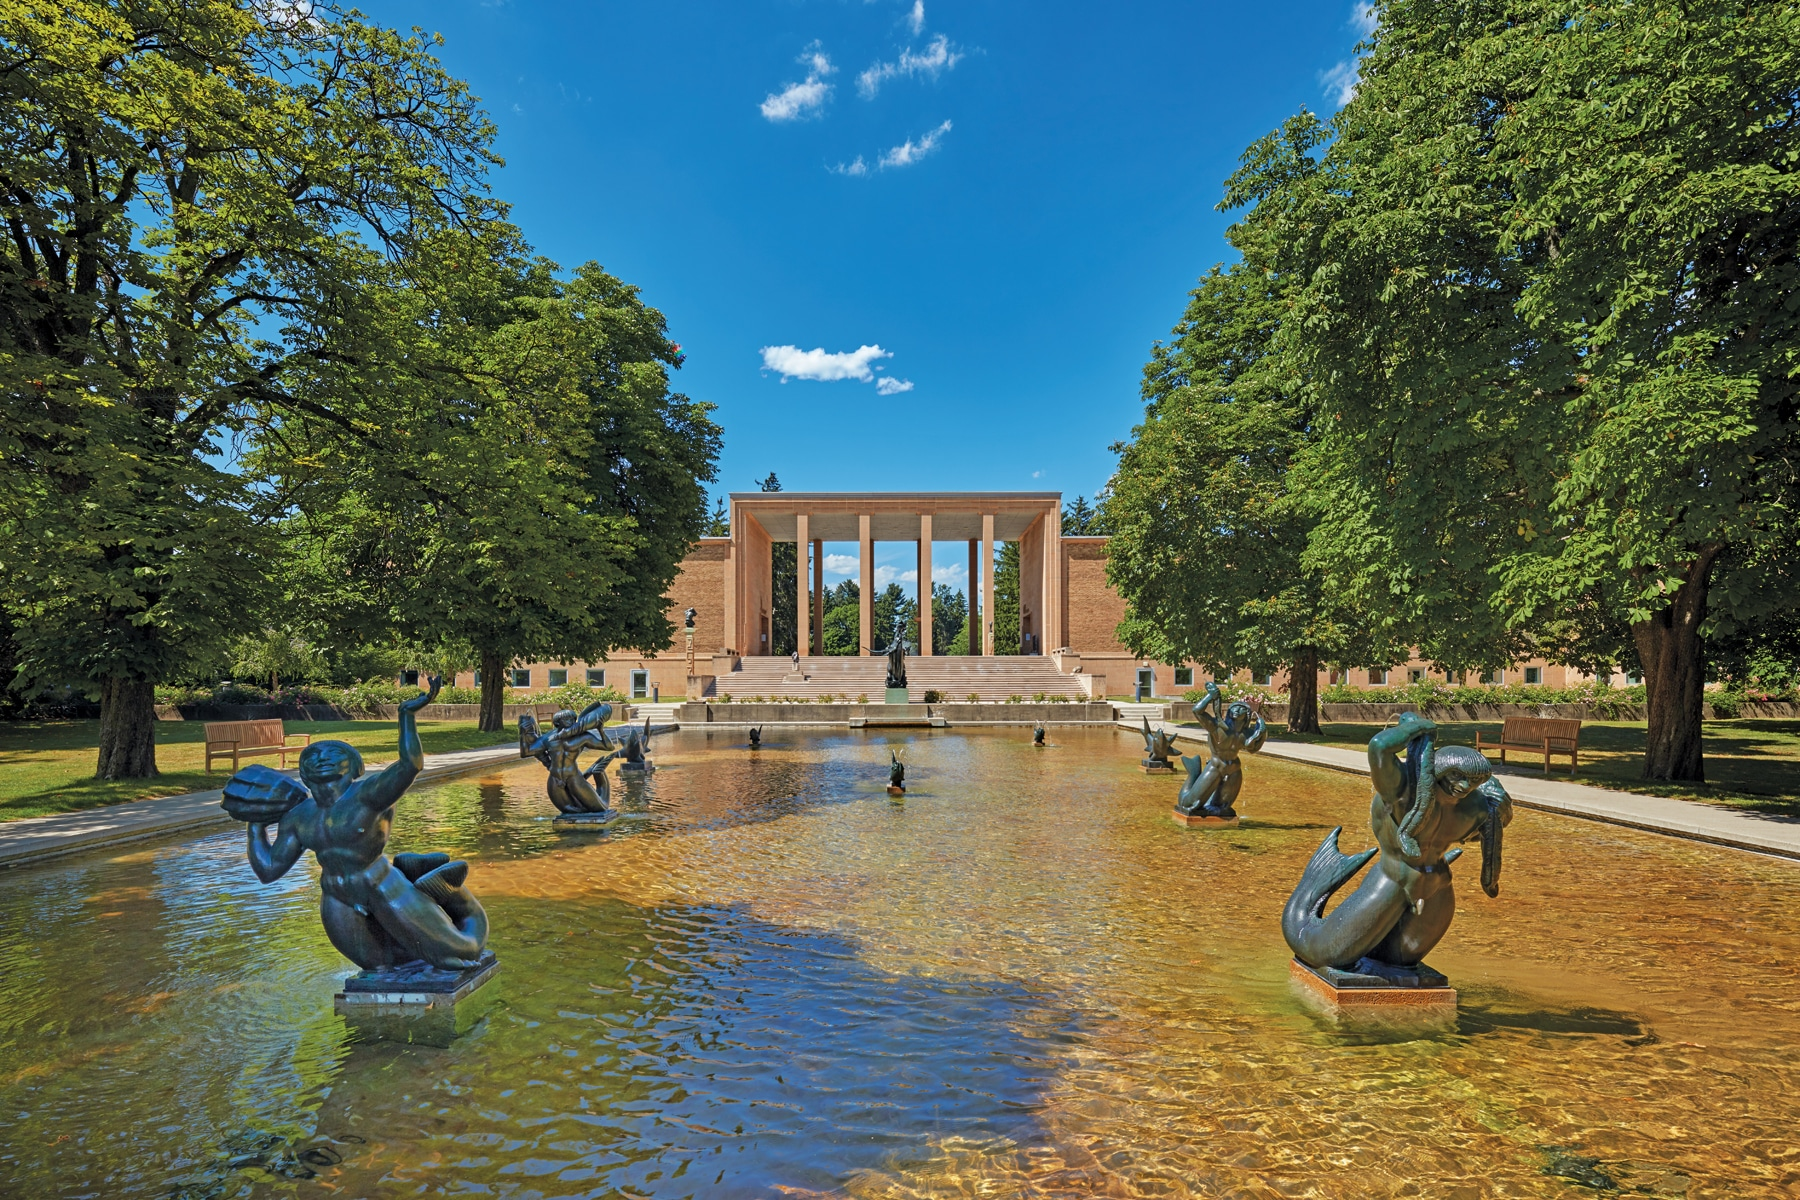 Triton Pools, a reflection pool at Cranbrook campus featuring bronze nautical themed sculptures by Carl Milles